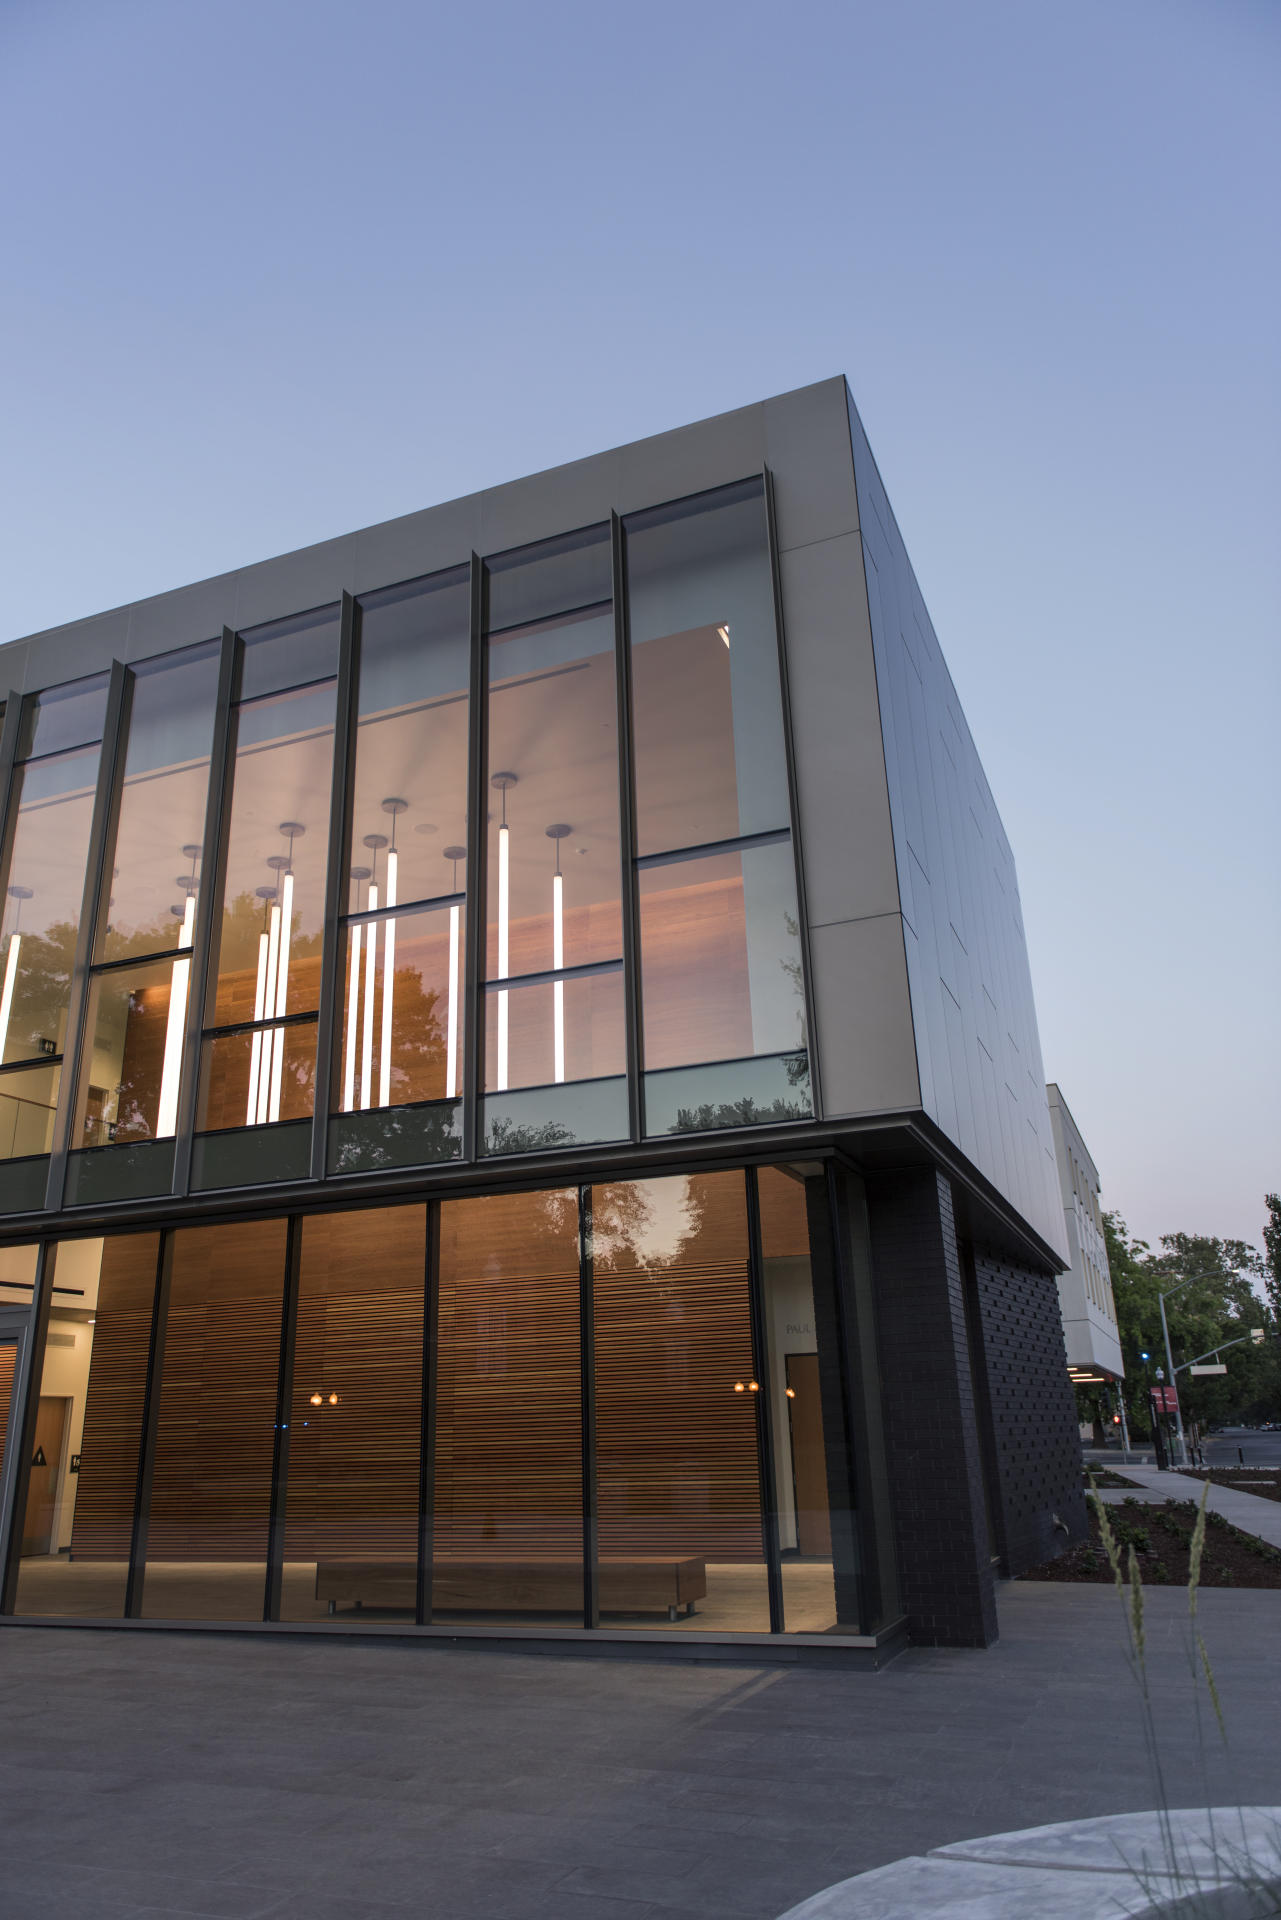 The building features dramatic lighting designed to conserve energy.